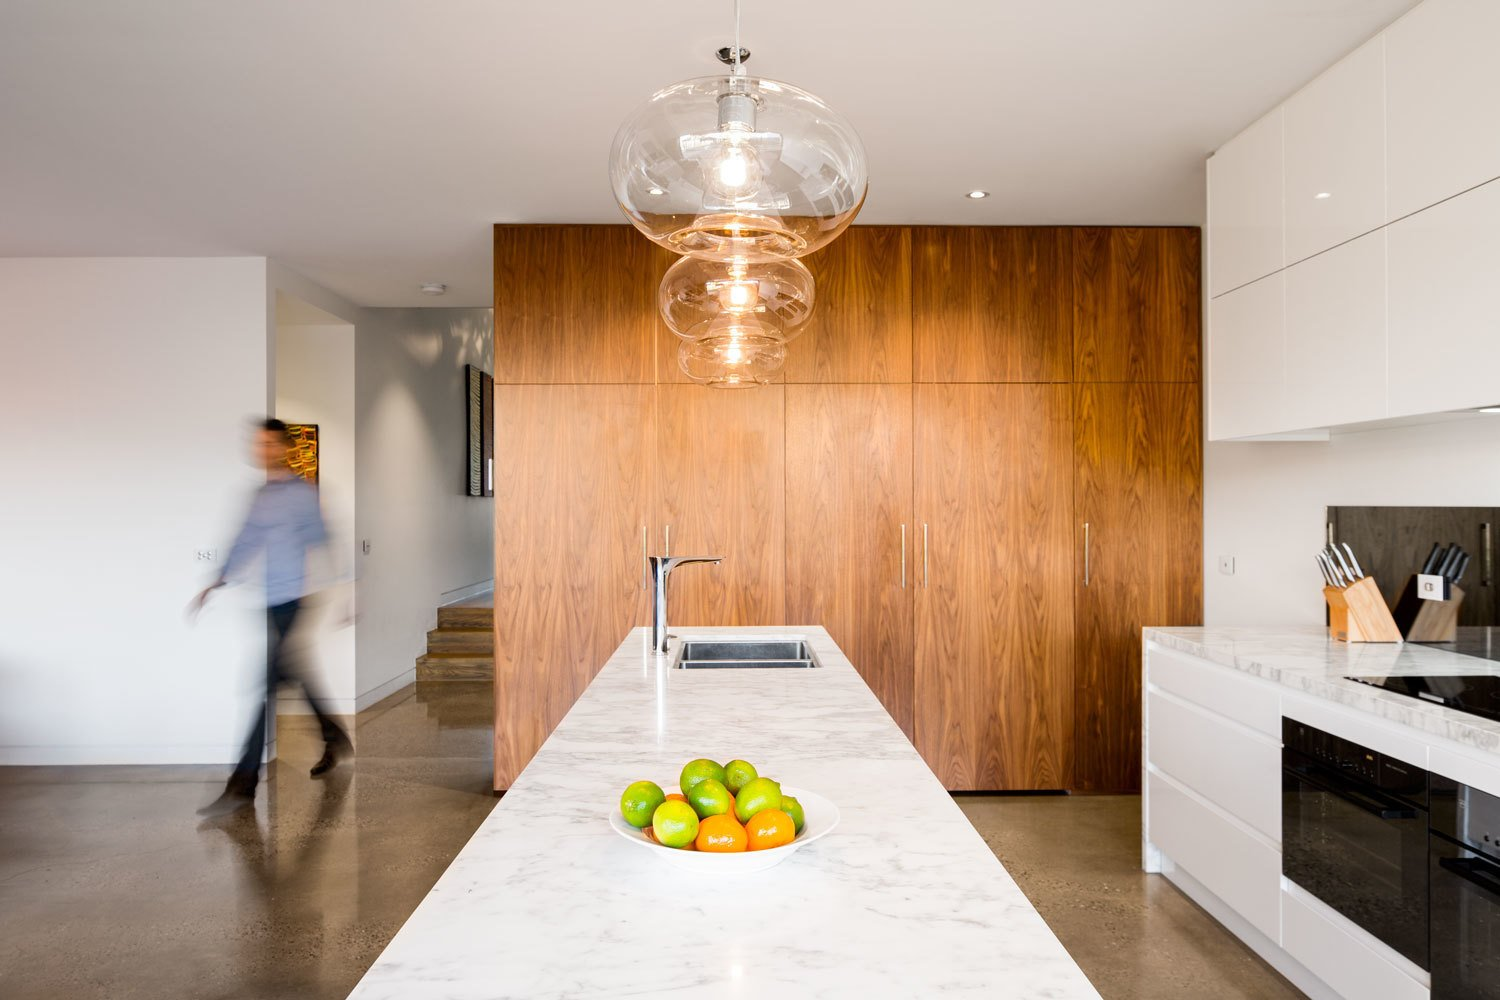 Kitchen, Wood Cabinet, White Cabinet, Concrete Floor, Ceiling Lighting, Recessed Lighting, Wall Oven, Range, Pendant Lighting, Drop In Sink, and Marble Counter The feature lighting consists of incandescent bulbs encased in clear glass. Its brightness is complemented by spot lighting located along the room's perimeter.  A Breezy Modern Addition Opens Up a Historic Melbourne Home by Zachary Edelson